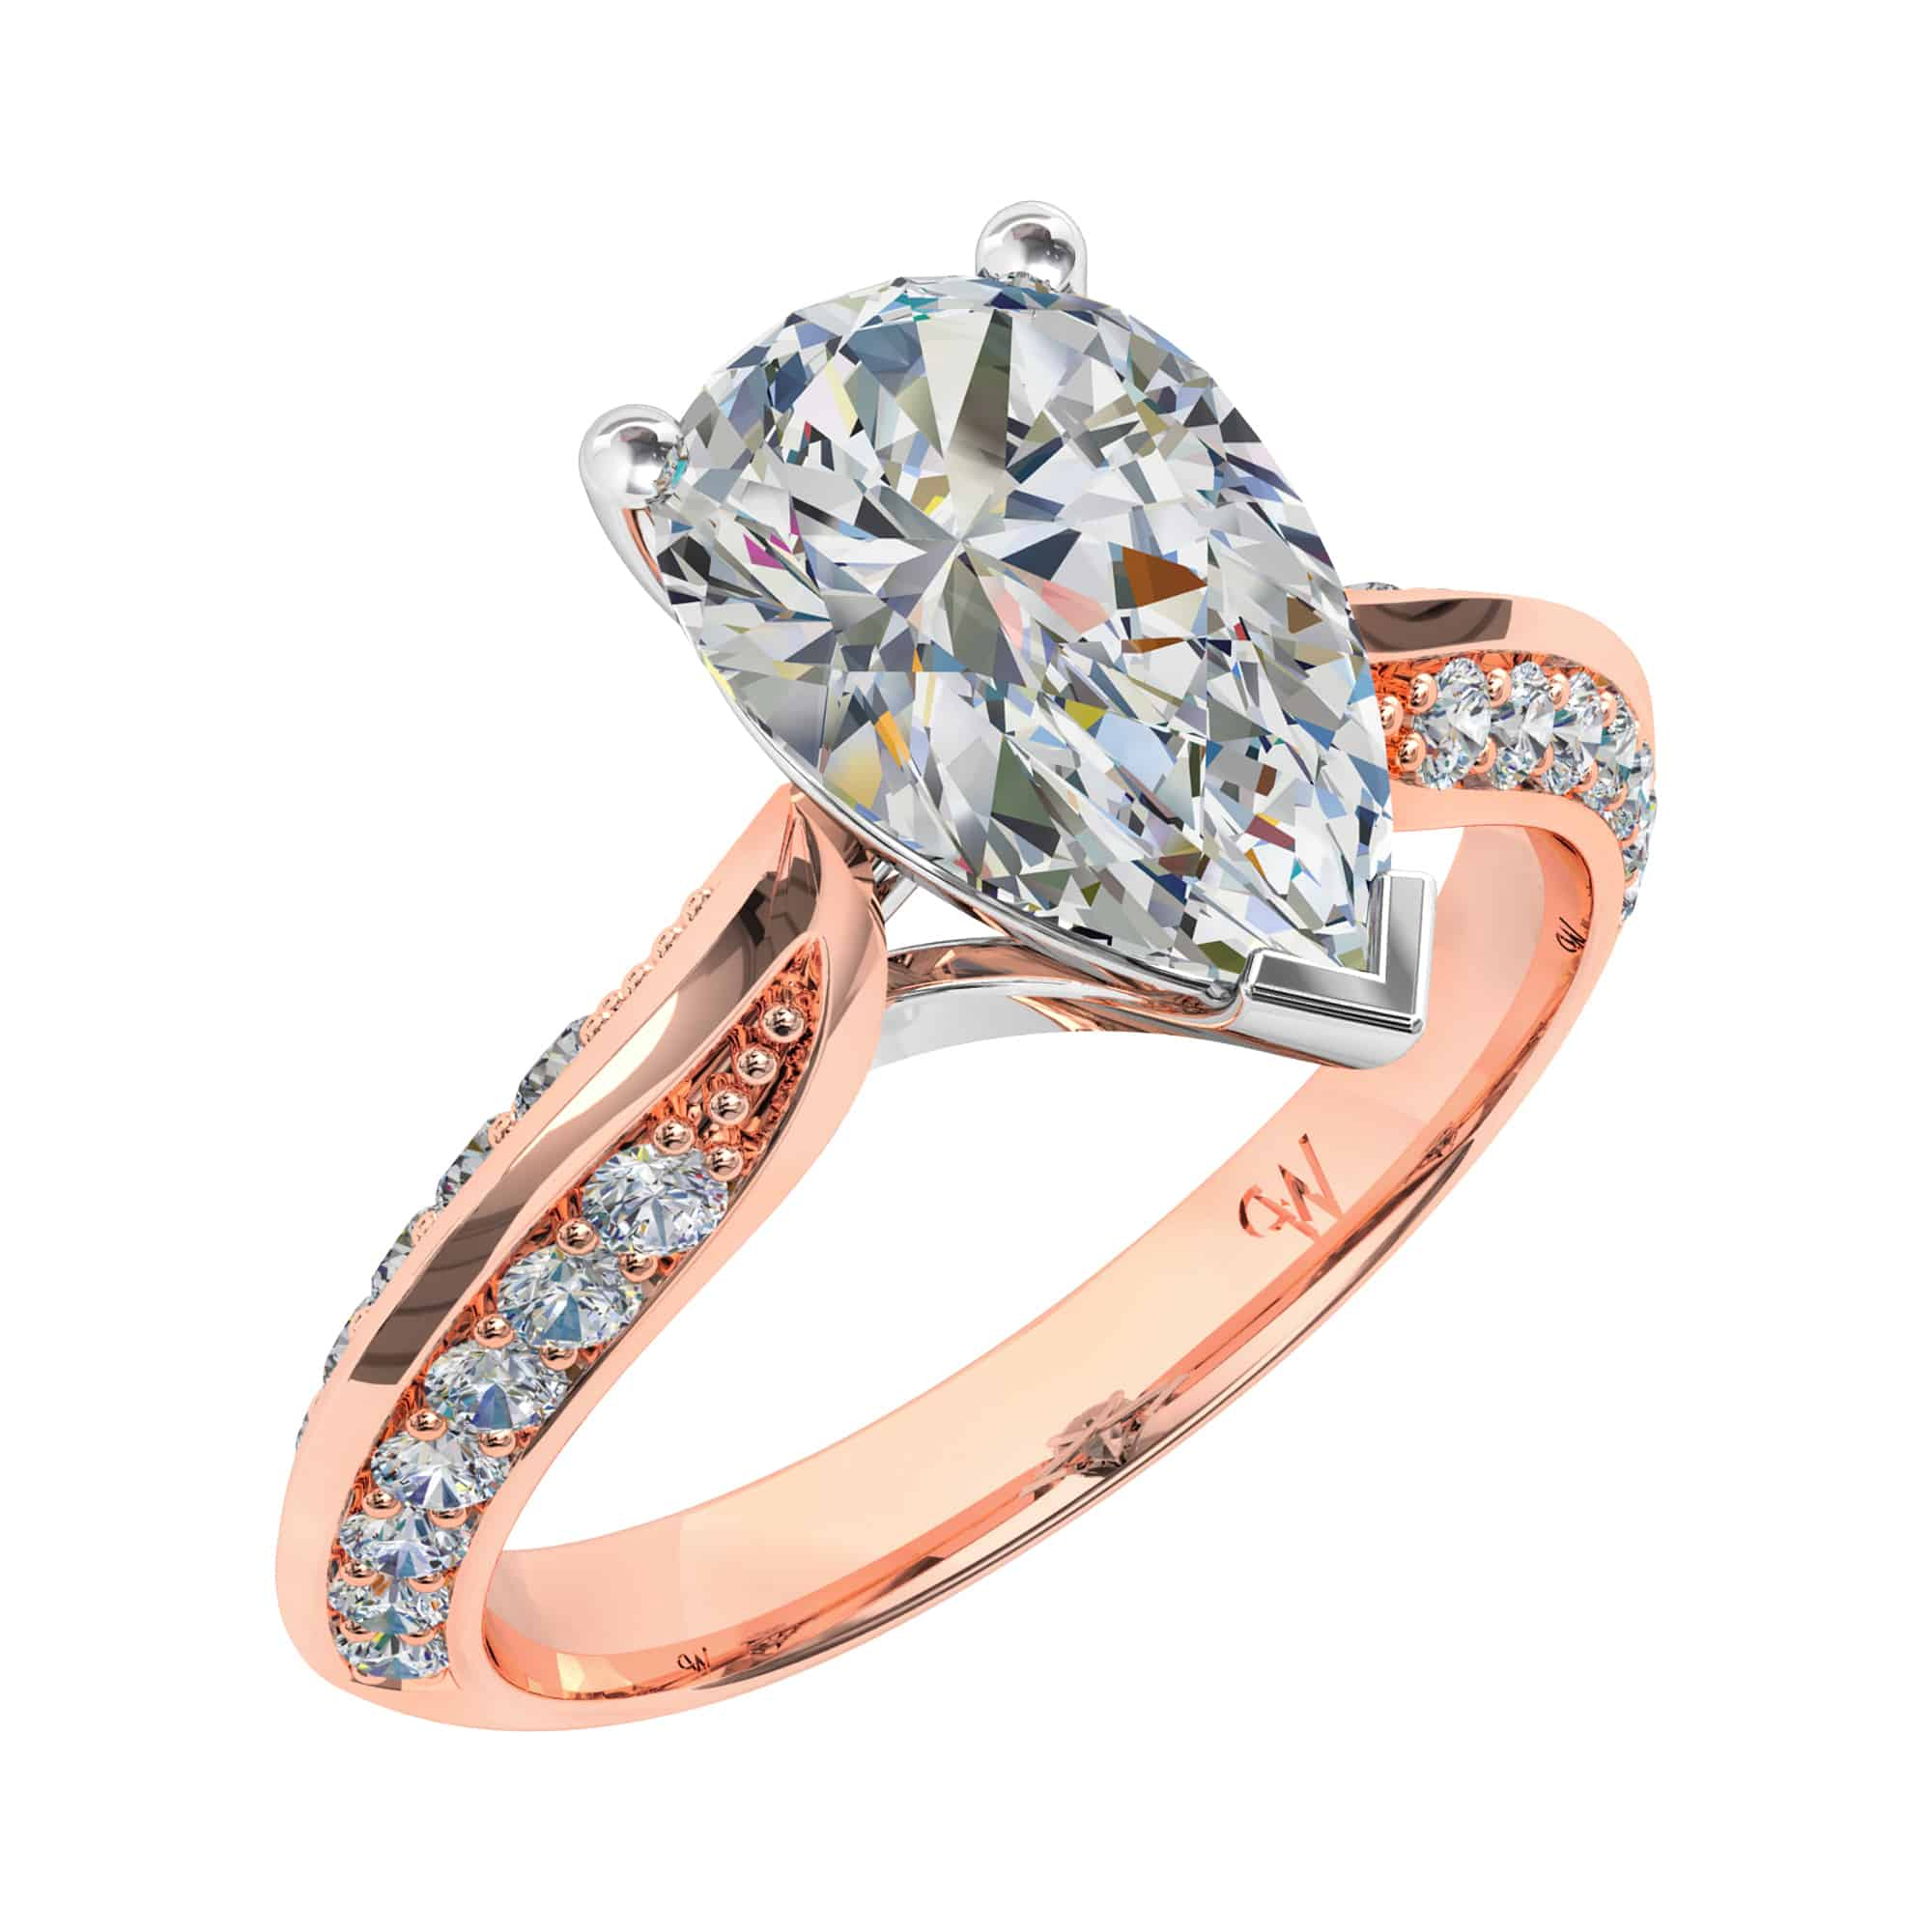 stunner detail shape wow ring diamond halo engagement rings ct description halor index pear img gorgeous wedding shaped